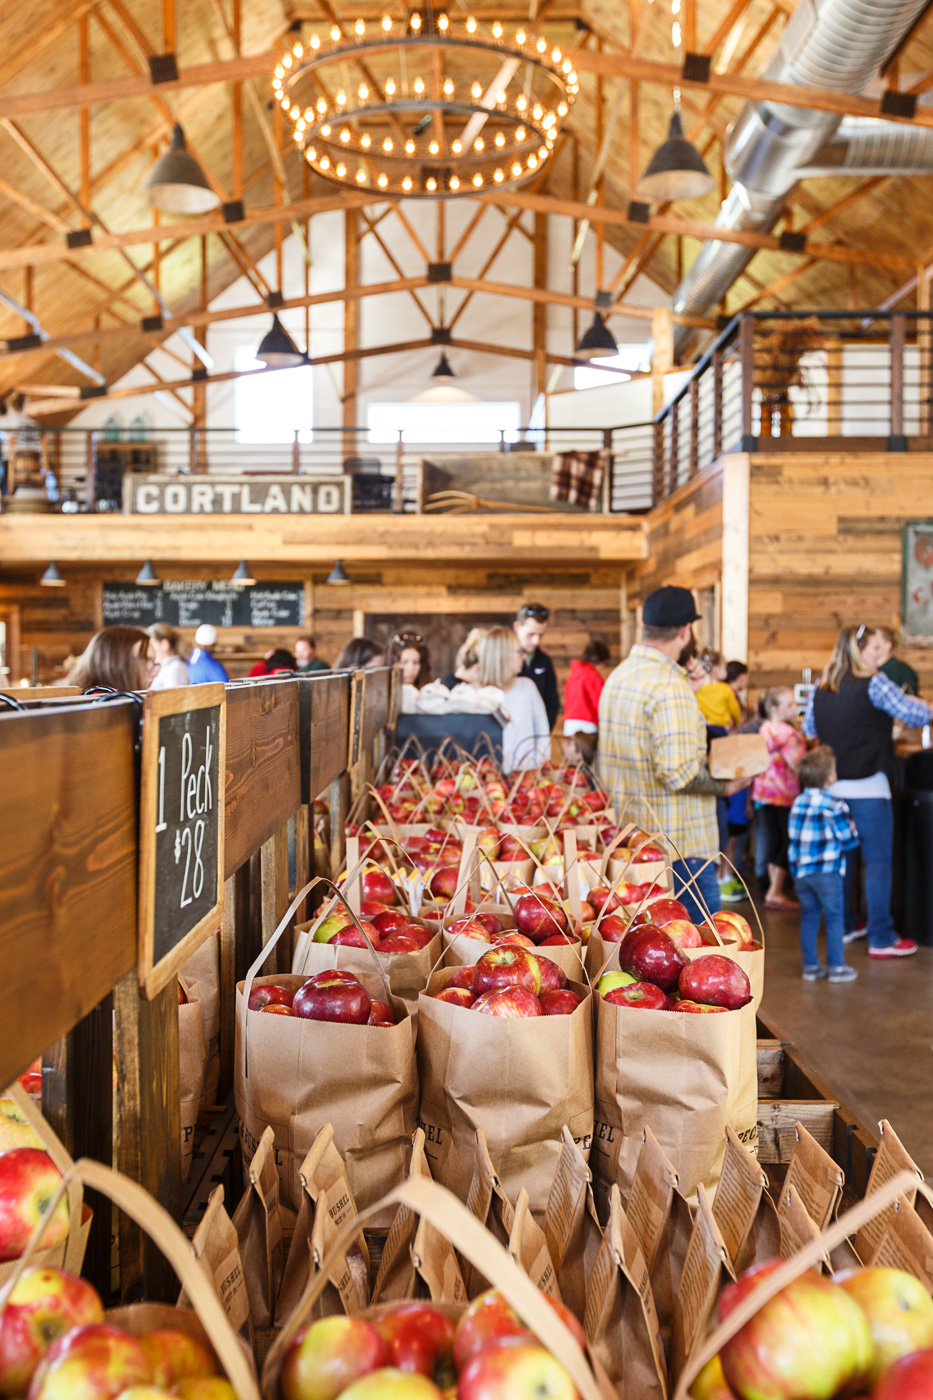 Peck and Bushel Organic Orchard and Barn in Colgate, Wisconsin, September 2018